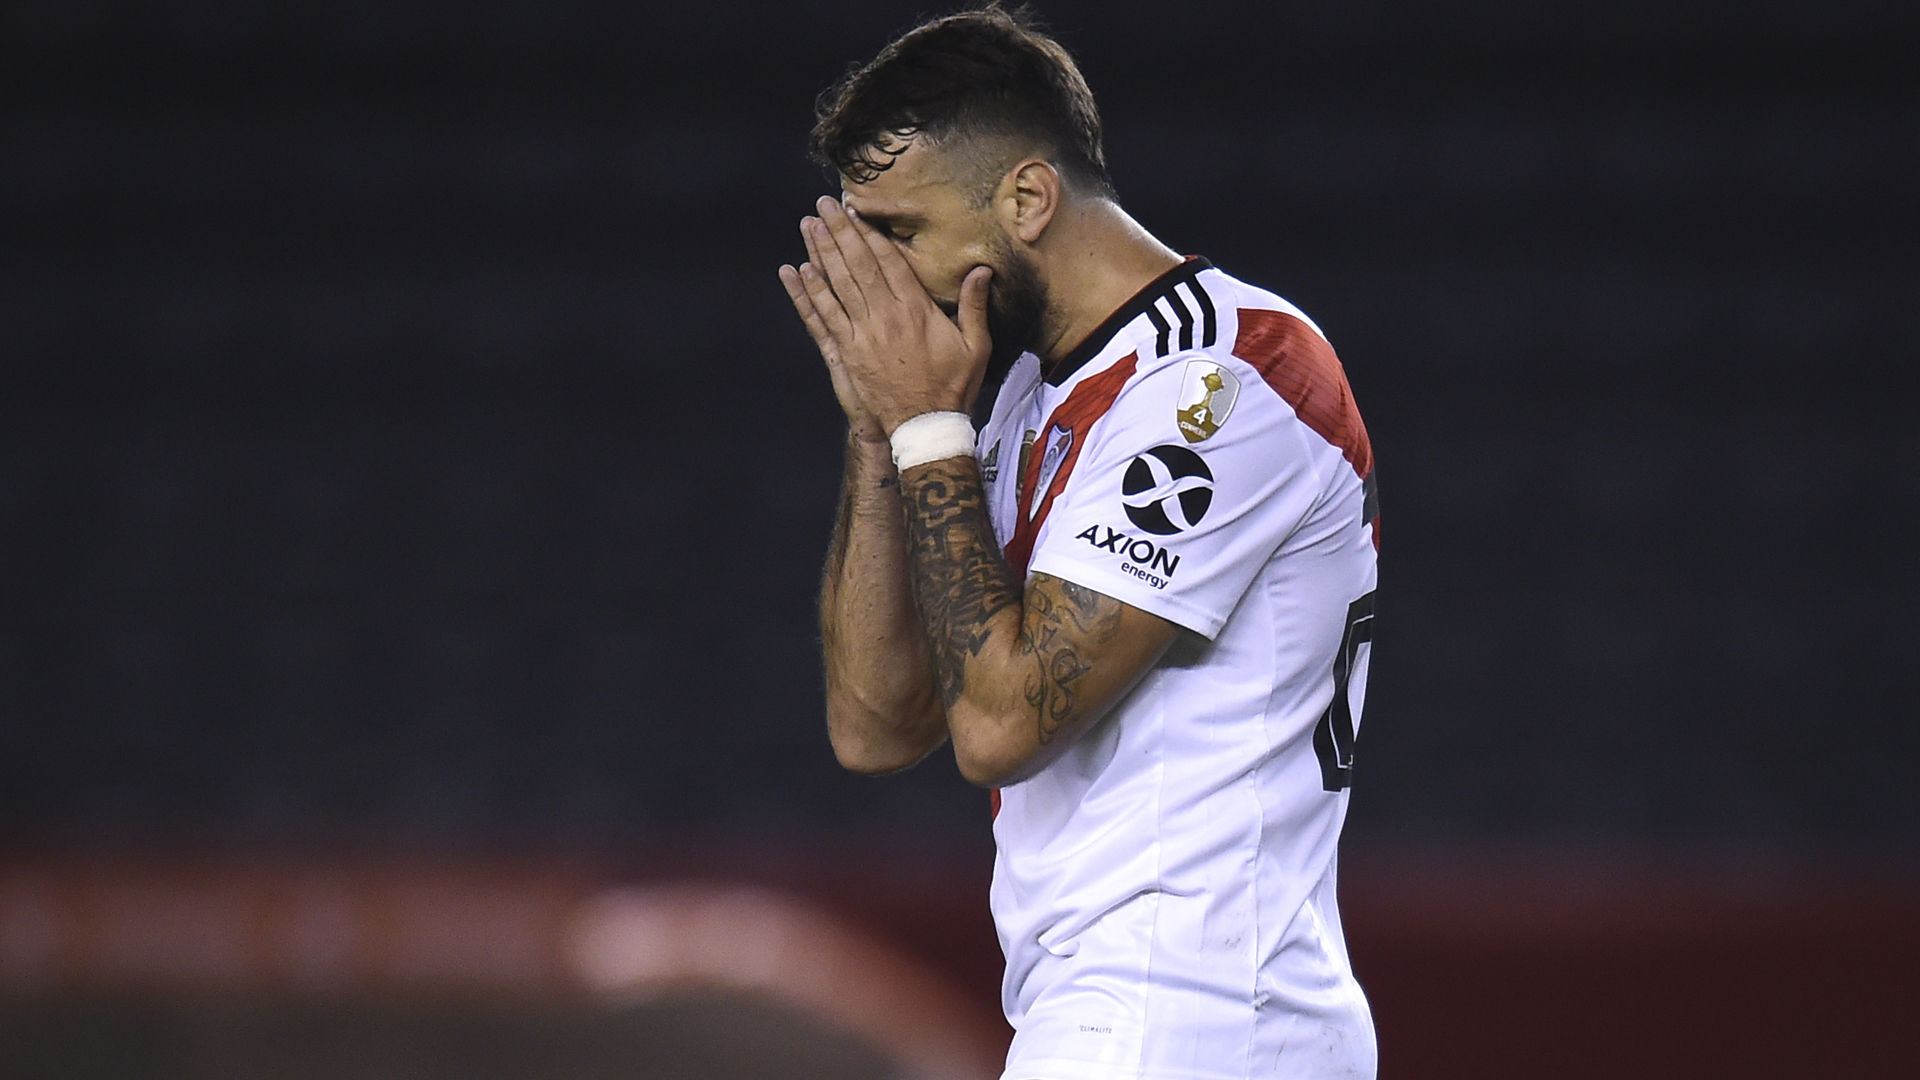 Copa Libertadores Review: River held again, Flamengo win